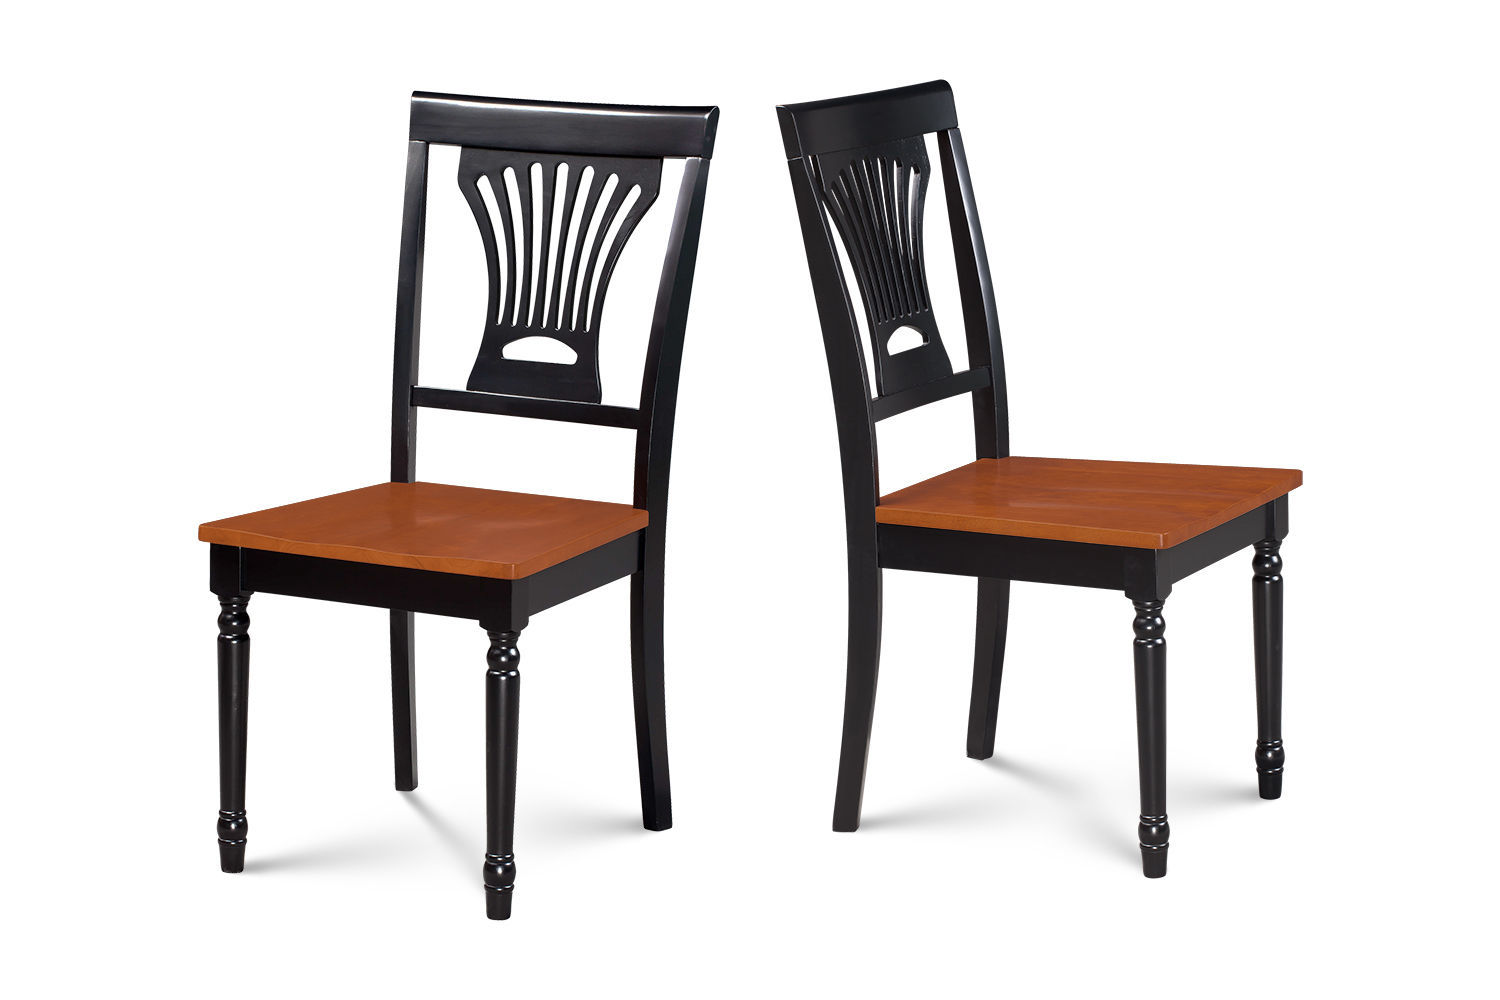 SET OF 2 DINING KITCHEN SIDE CHAIR  w/ WOODEN SEAT IN BLACK & CHERRY FINISH